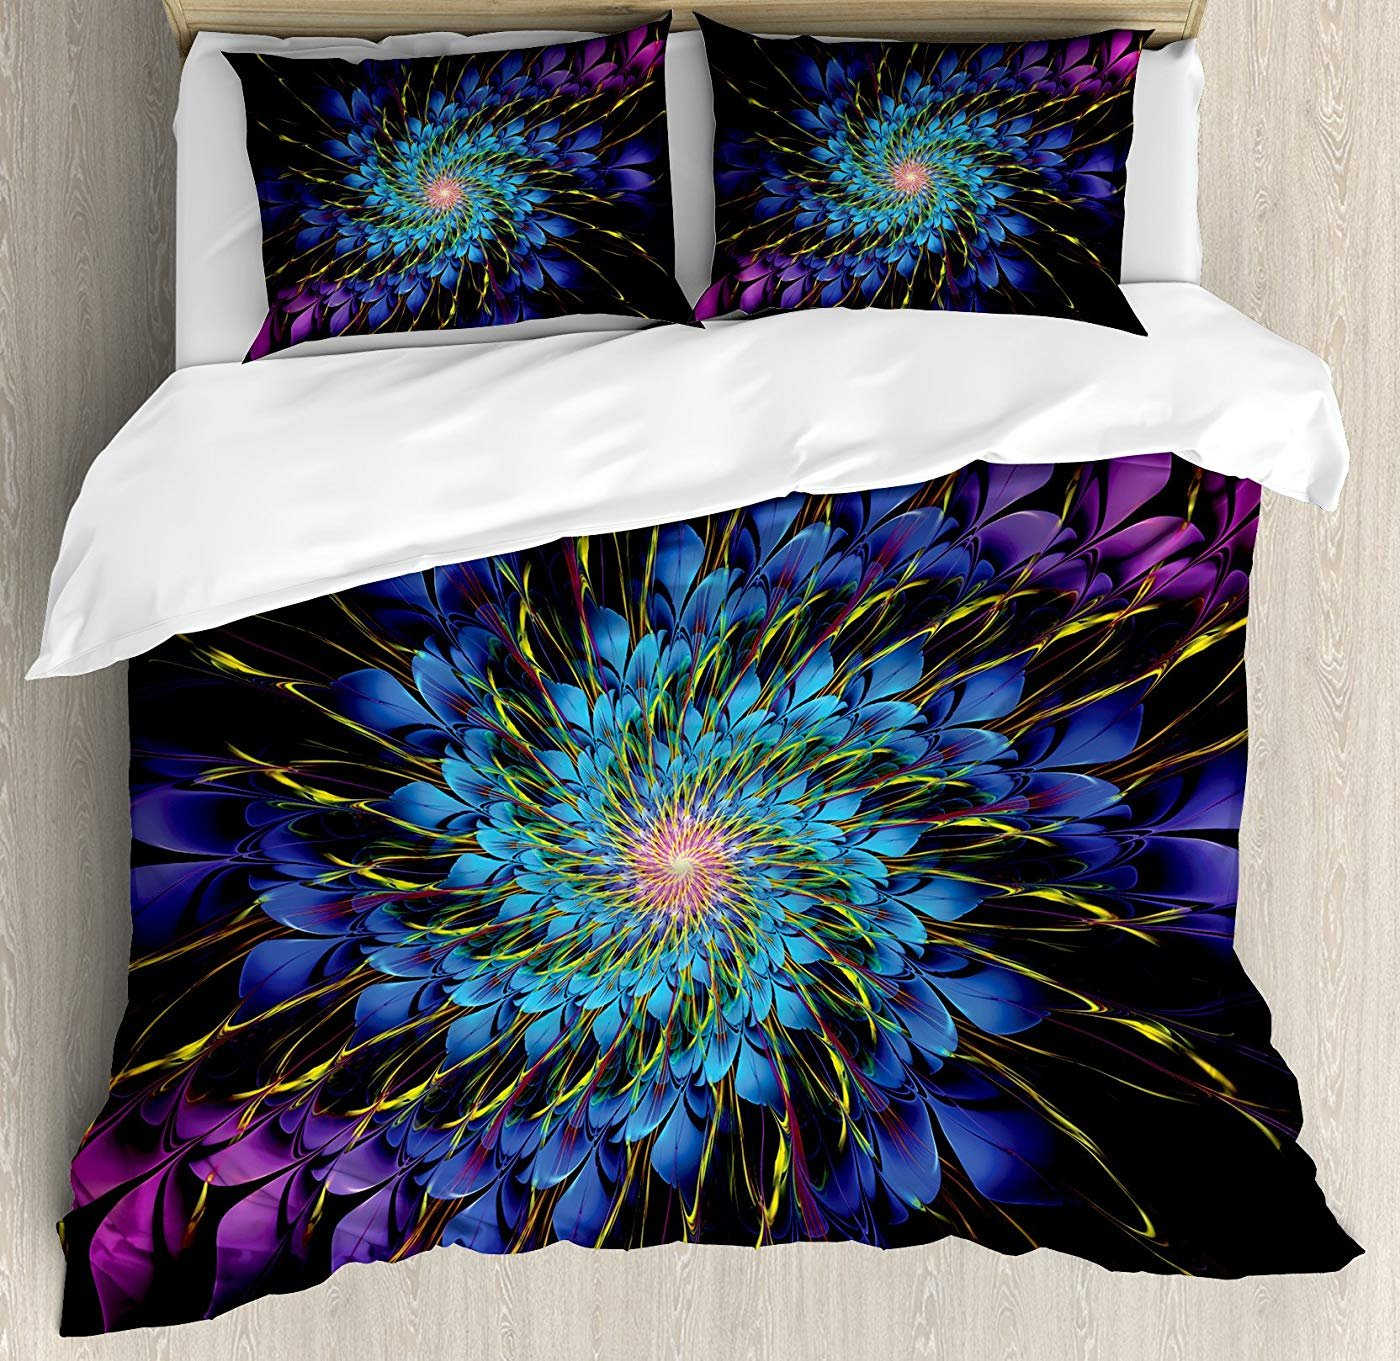 Multi 4 Twin Trippy Duvet Cover Set Twin Size, Vivid color Petals Arranged in Vortex Abstract Swirling Image Mindbending Shape,Lightweight Microfiber Duvet Cover Sets, Multicolor